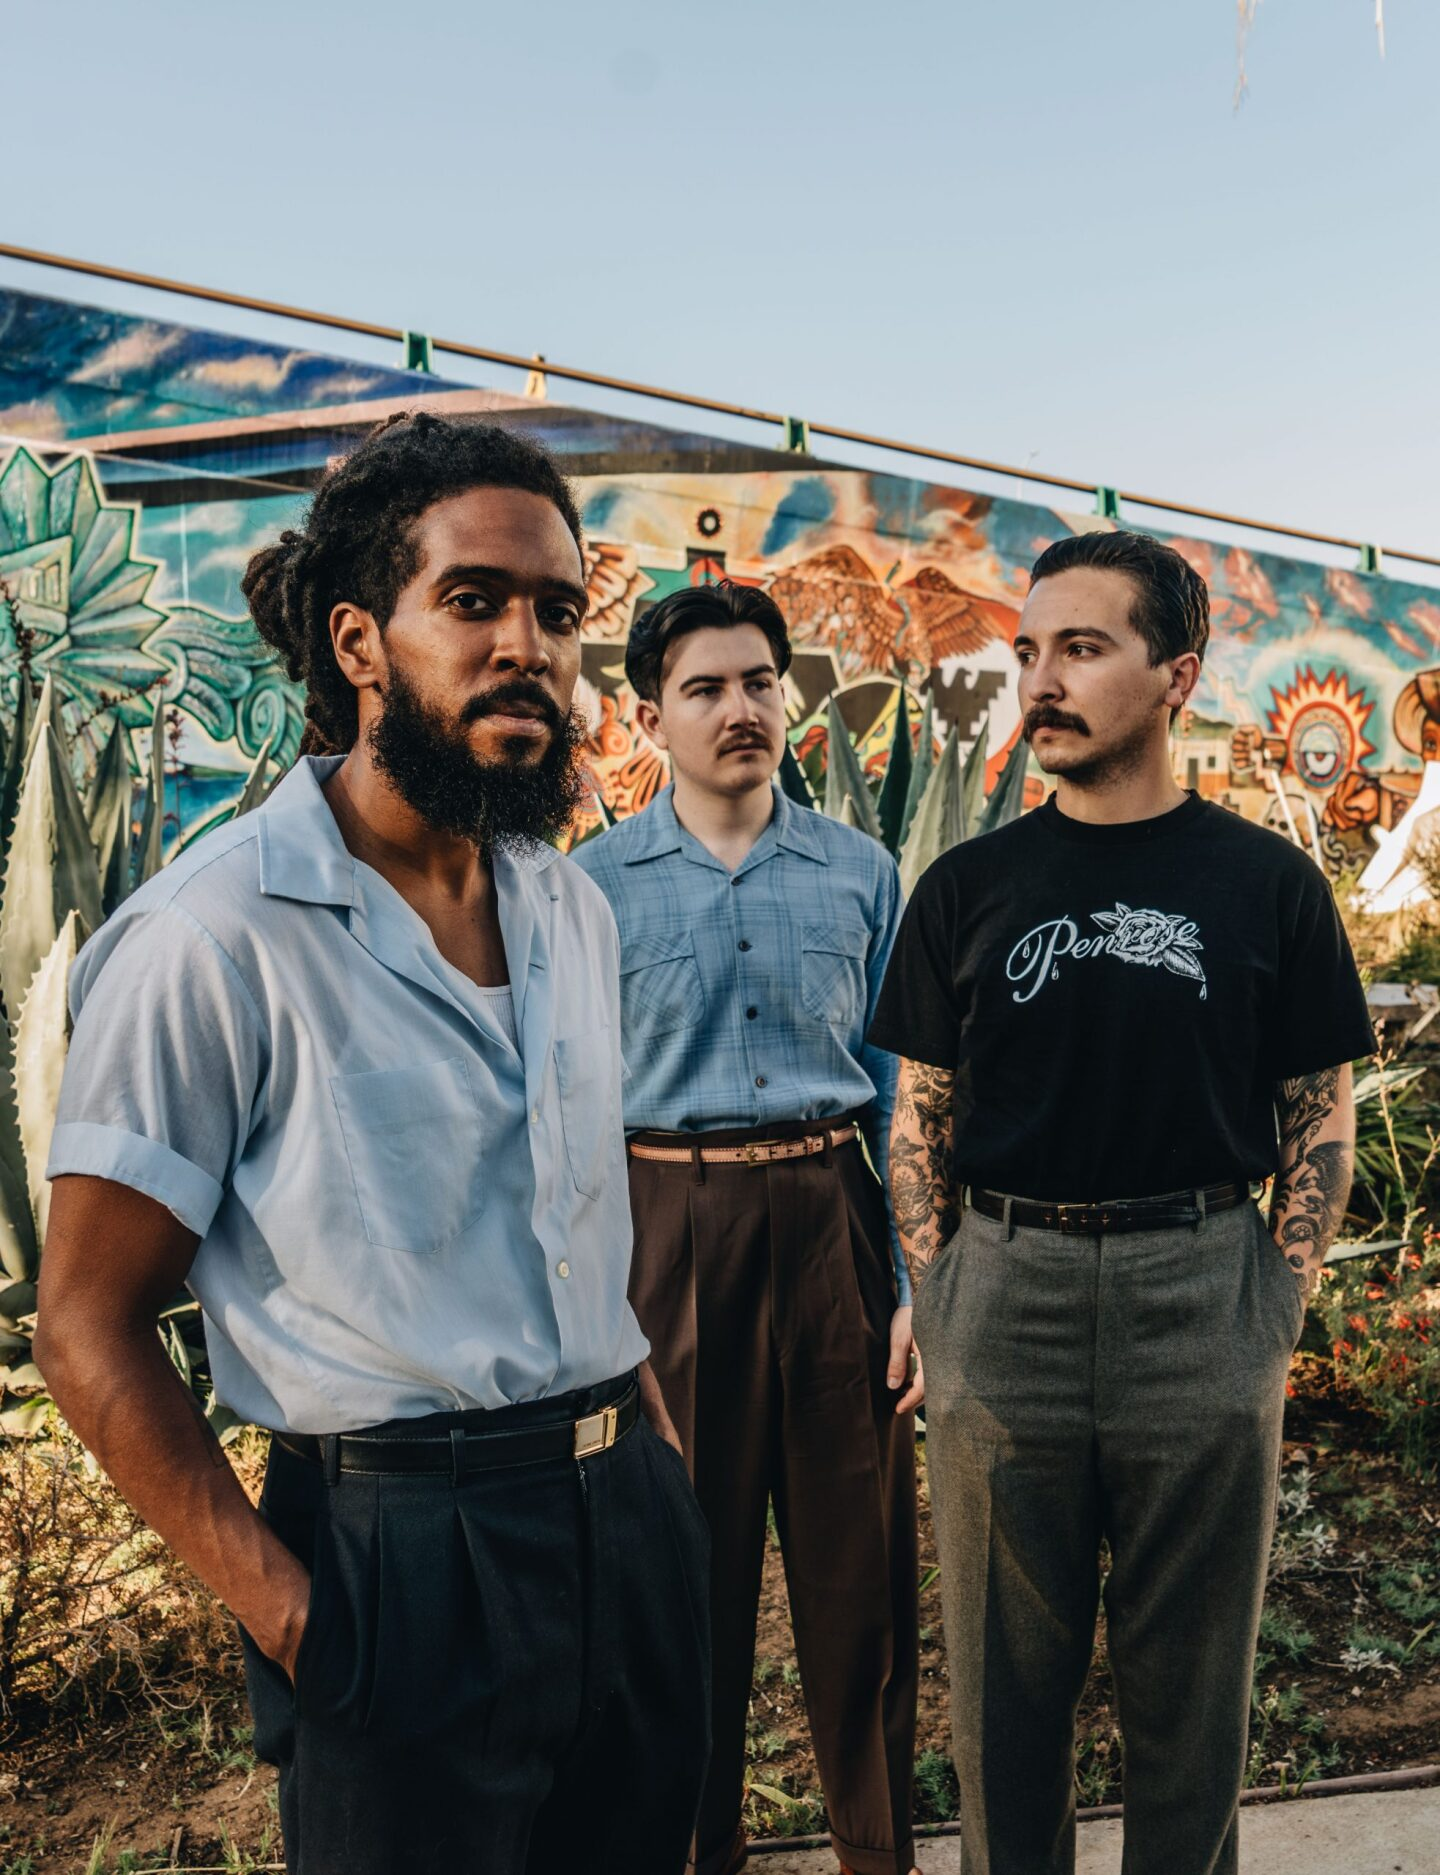 The members of Thee Sacred Soul, Sal Samano, Alex Garcia and Josh Lane, stand together in front of a mural.